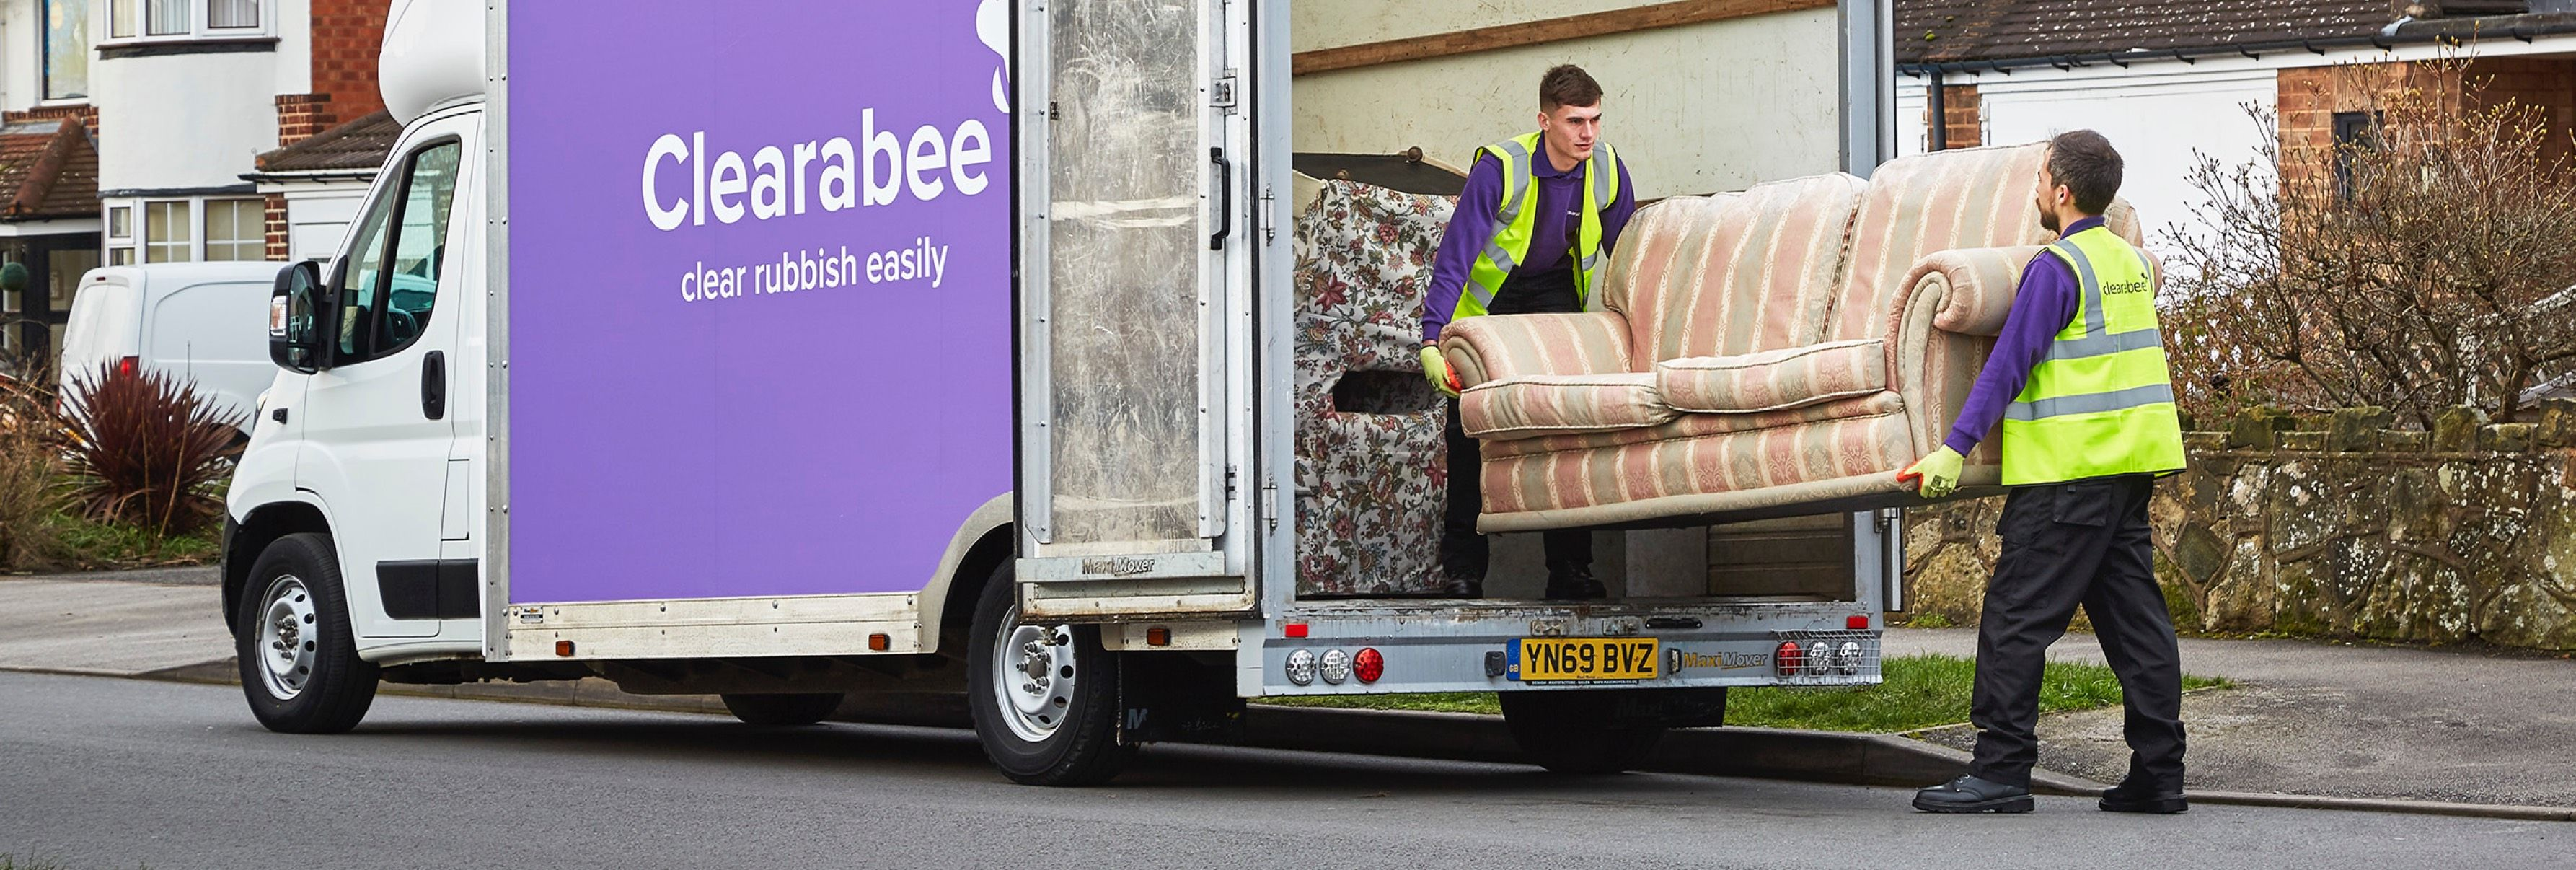 Waste Removal: How are Clearabee still operating?